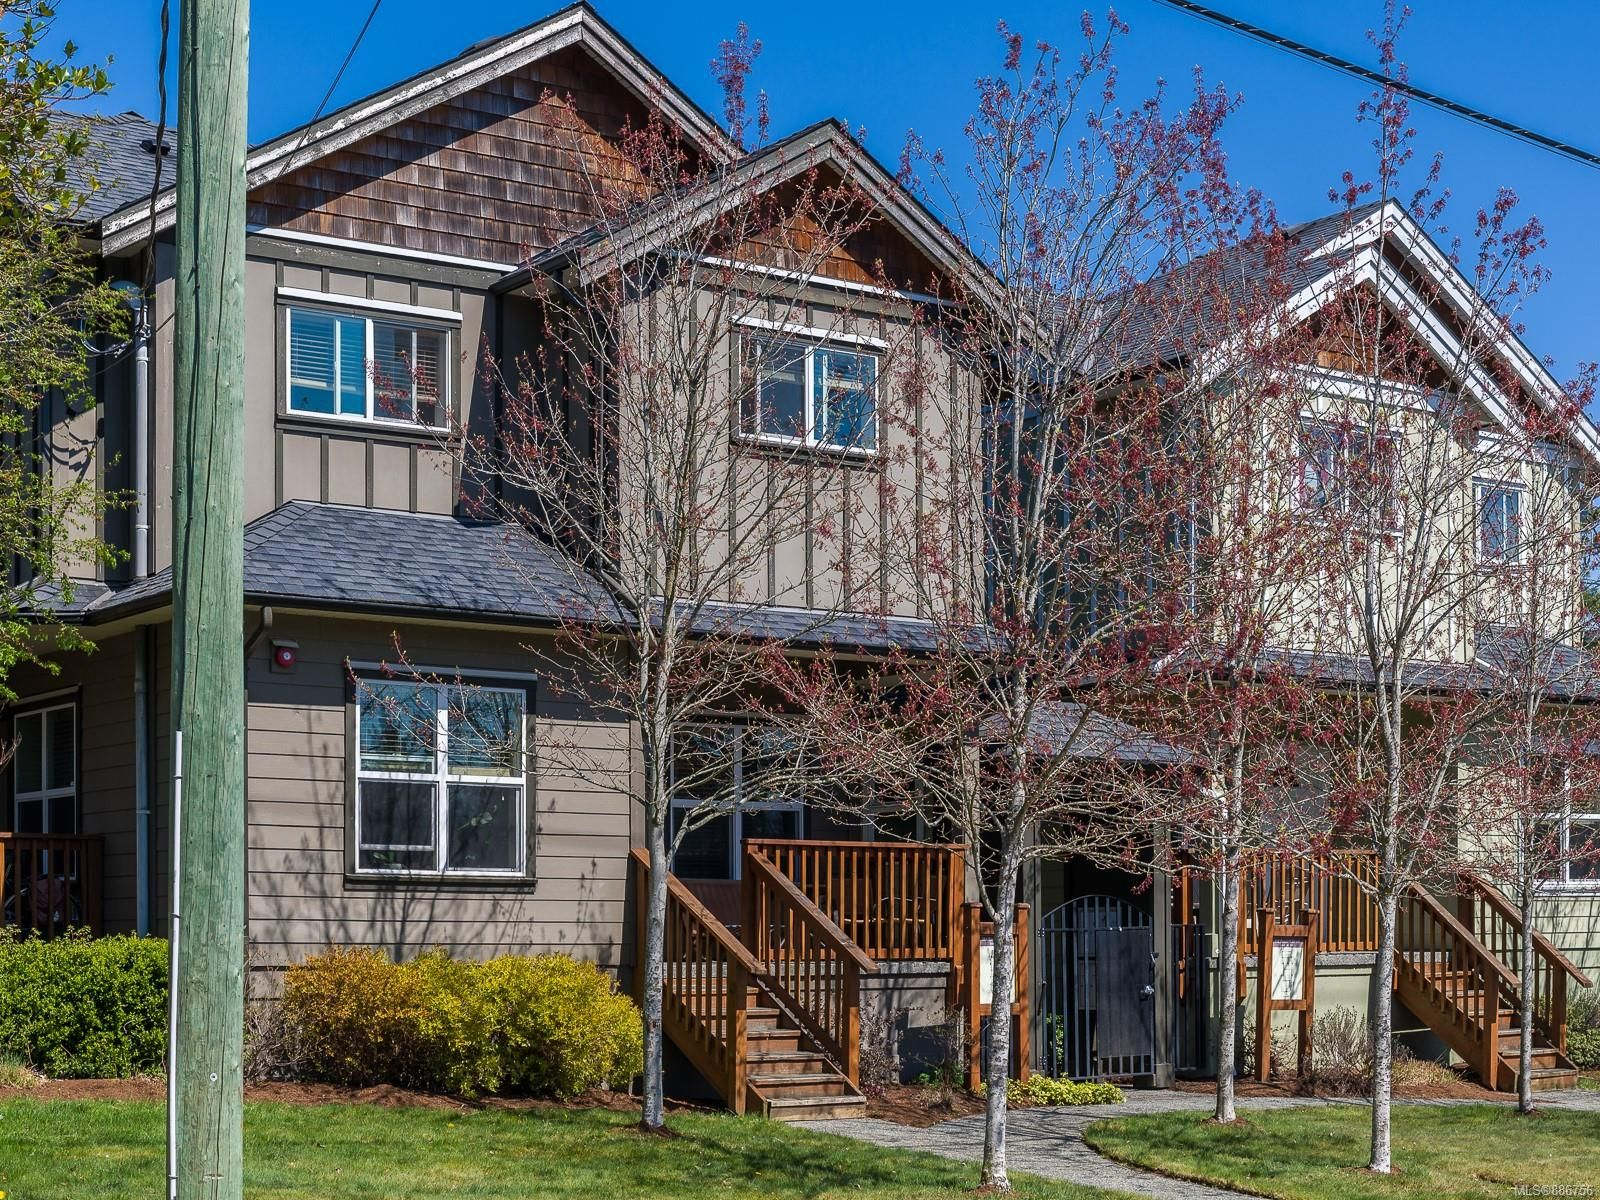 Main Photo: 104 584 Rosehill St in Nanaimo: Na Central Nanaimo Row/Townhouse for sale : MLS®# 886756